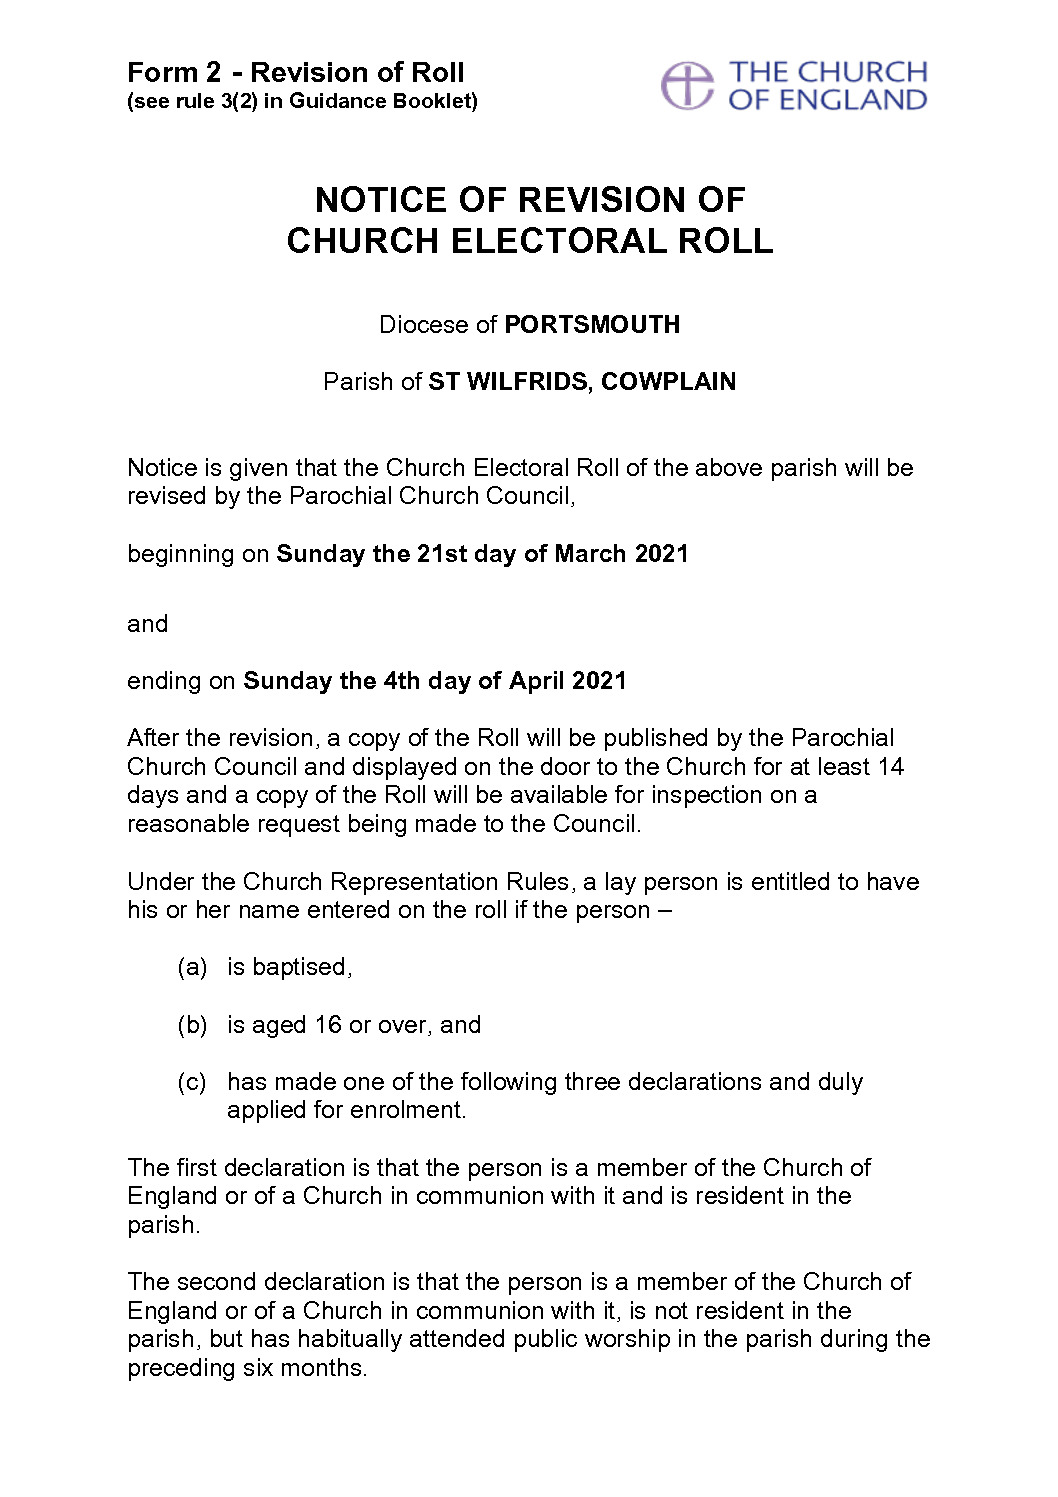 thumbnail of Form_2_-_Notice_of_Revision_of_Church_Electoral_Roll 2021